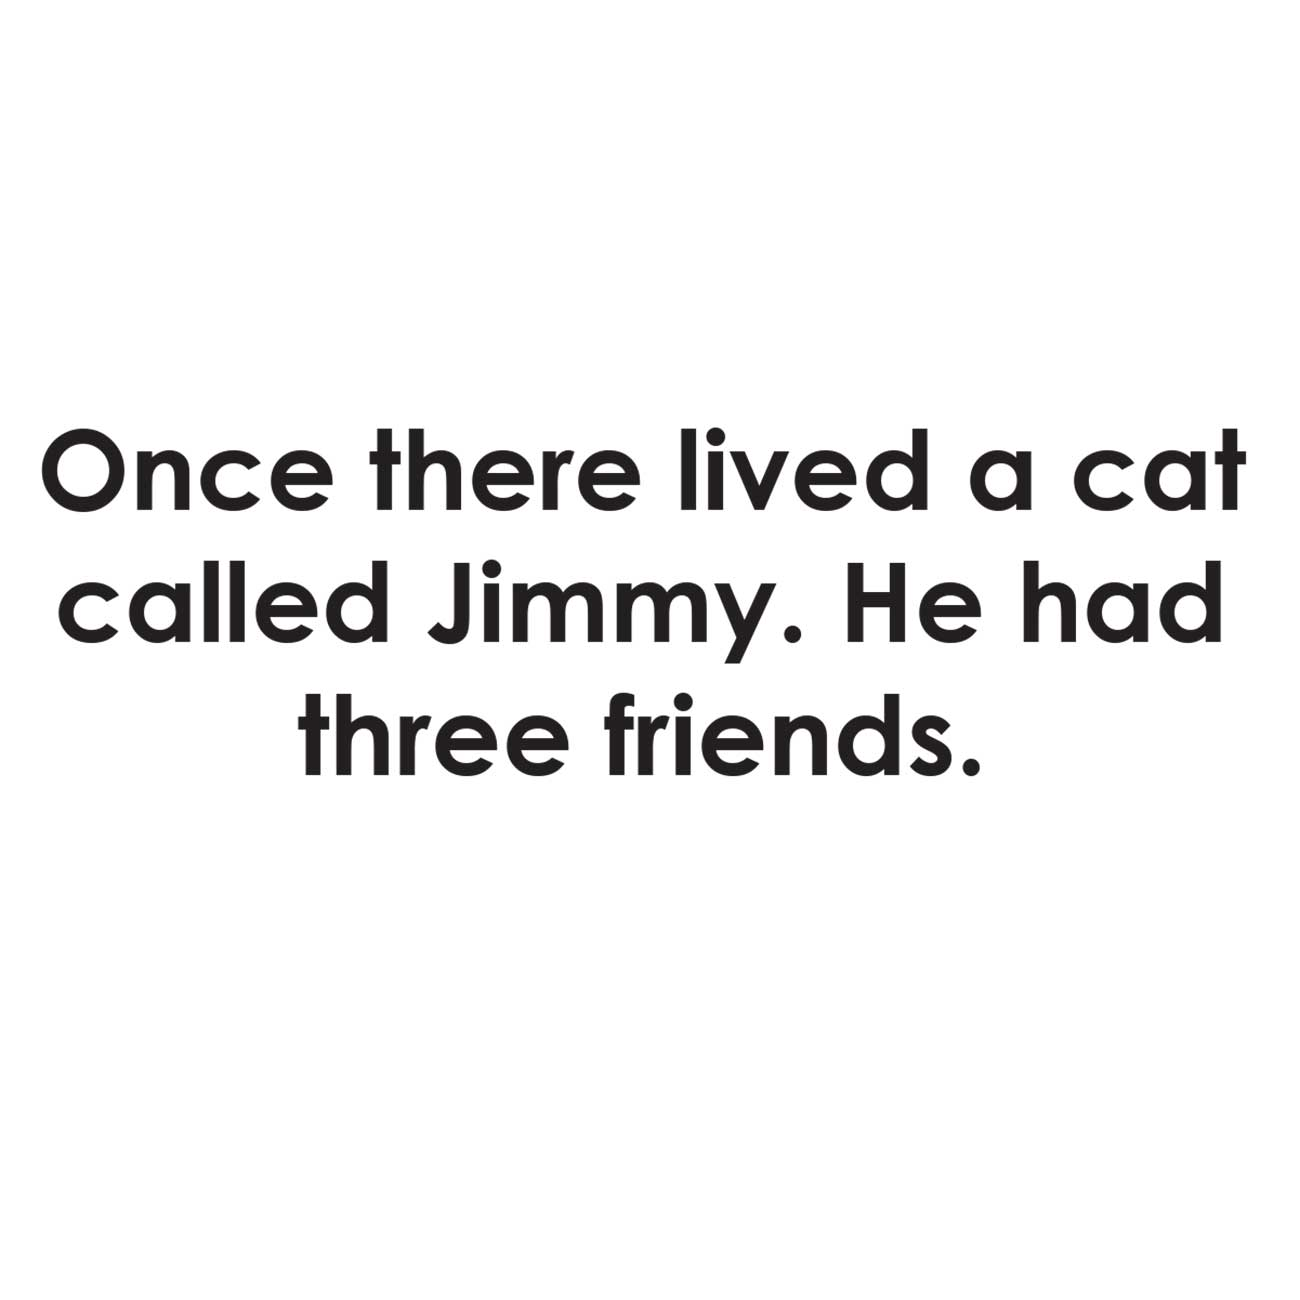 Children's early reader free kids stories Jimmy the Cat and Bobiks Birthday 4